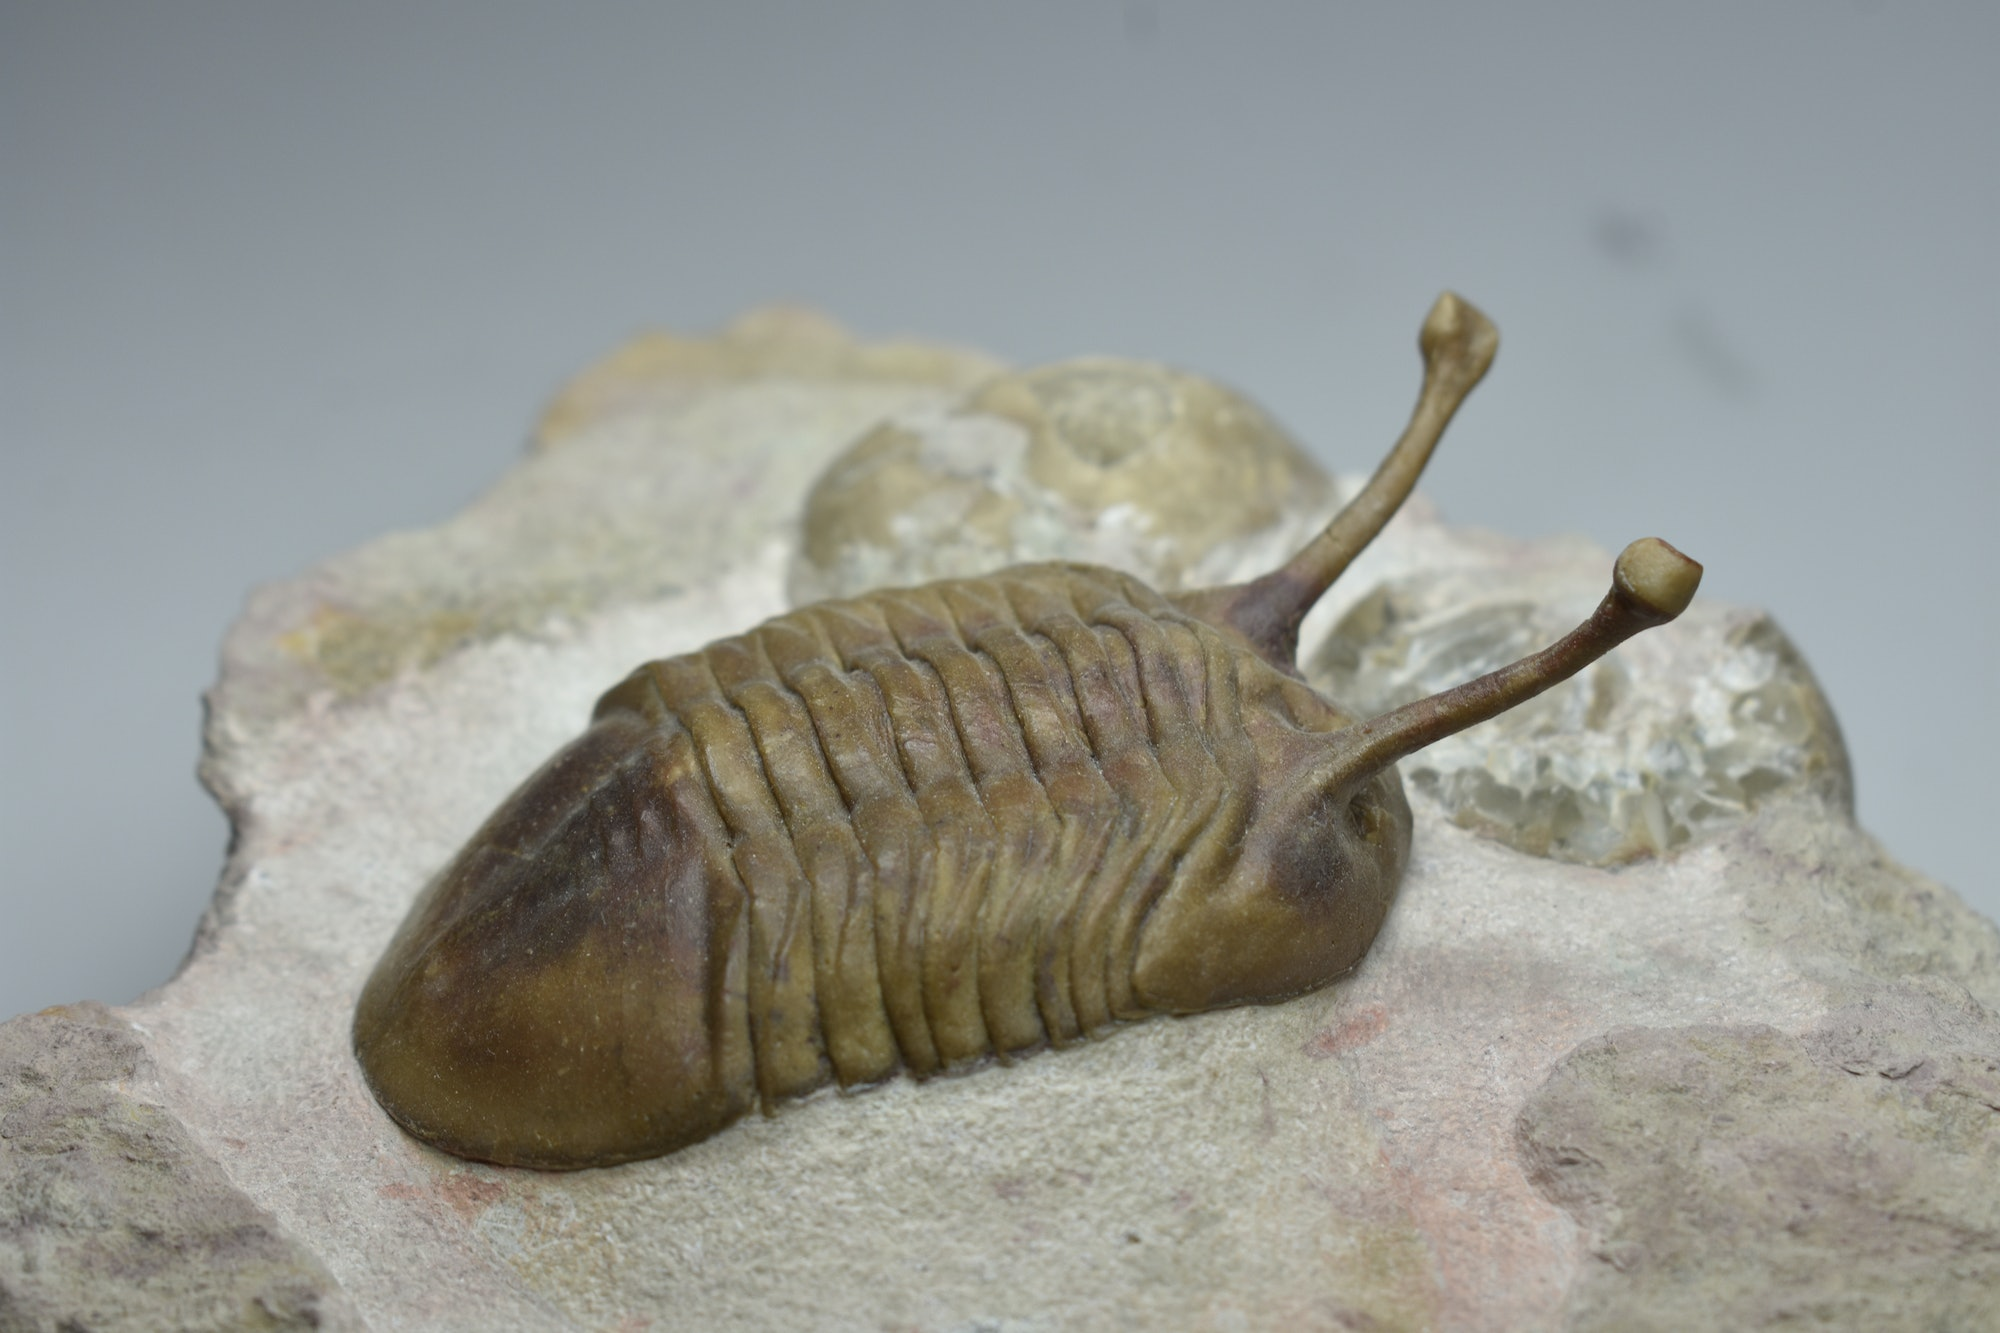 Marine organisms like trilobites proliferated during the ice age that came after the asteroid's dust cloaked Earth.